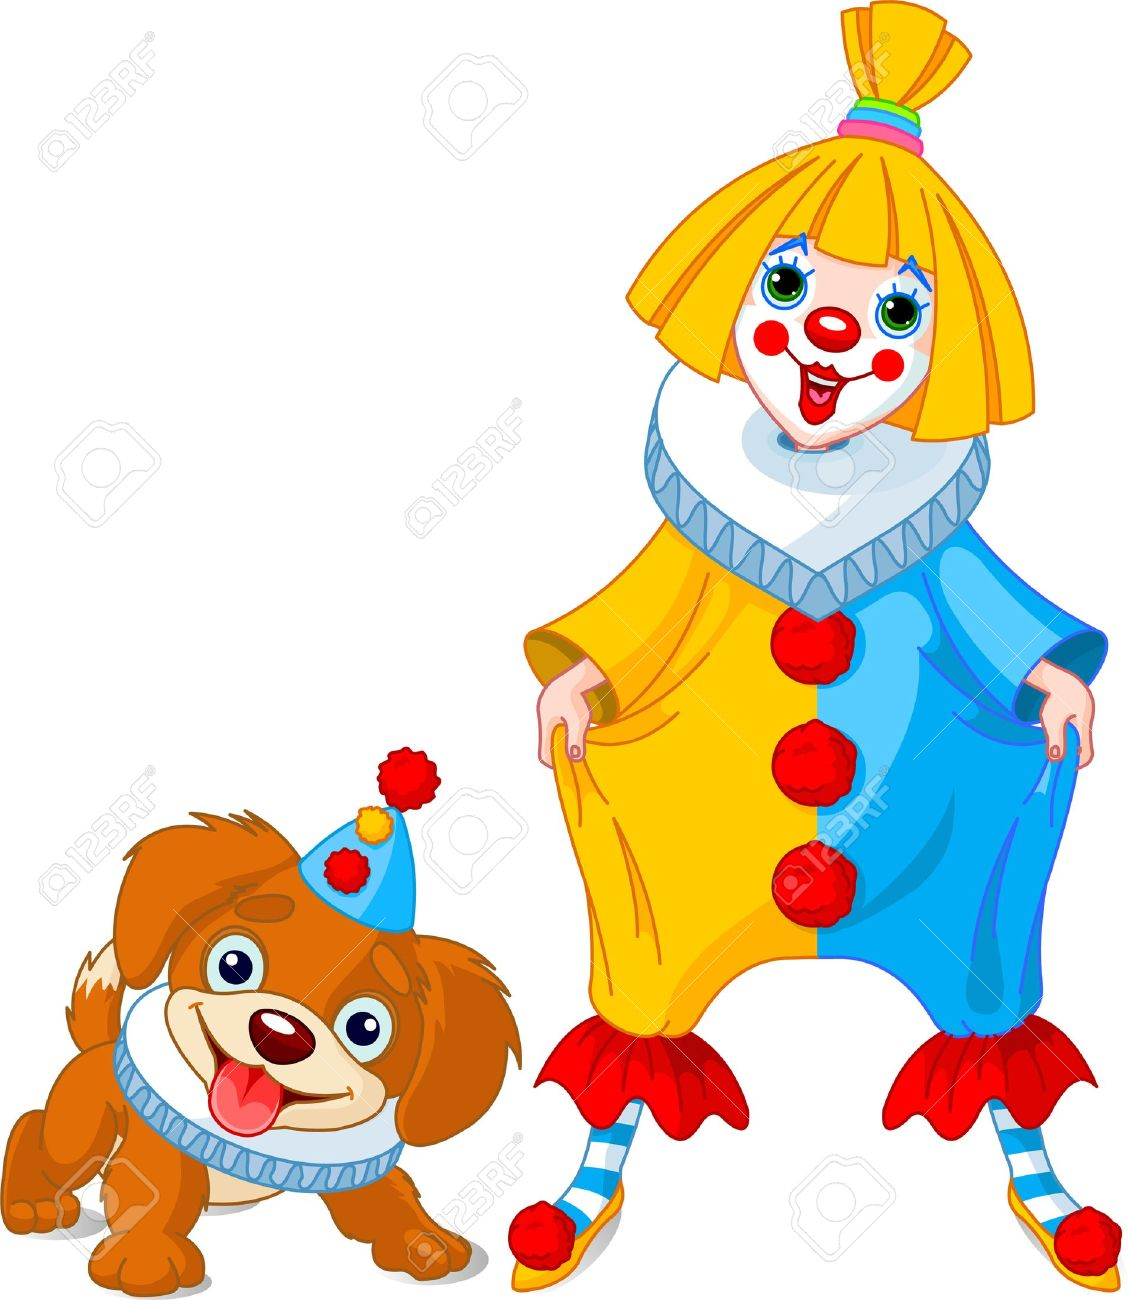 Funny Clown Girl With Her Friend   Clown Puppy Royalty Free.